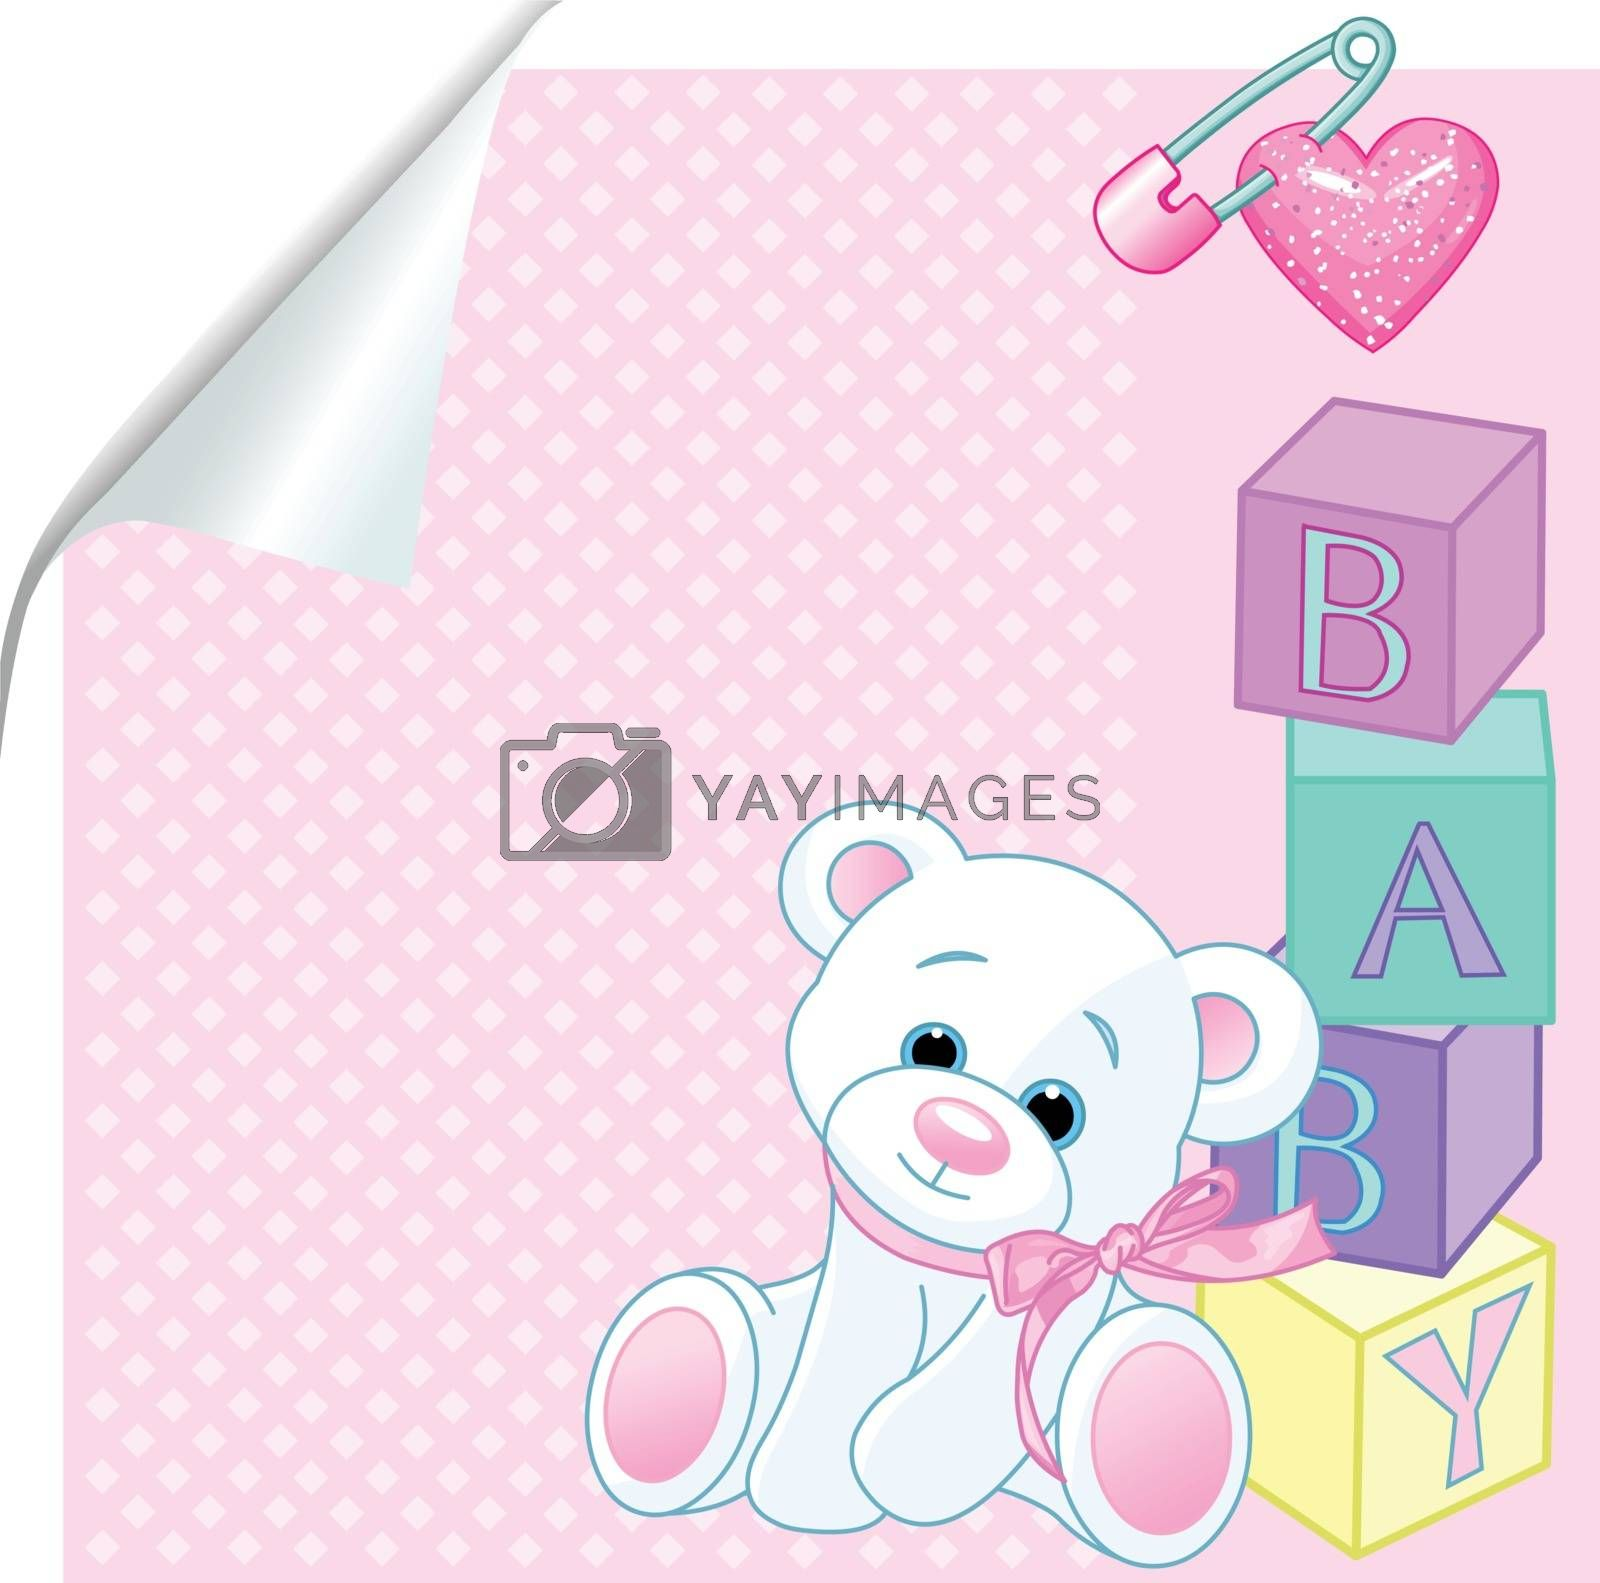 Royalty free image of Baby pink by Dazdraperma